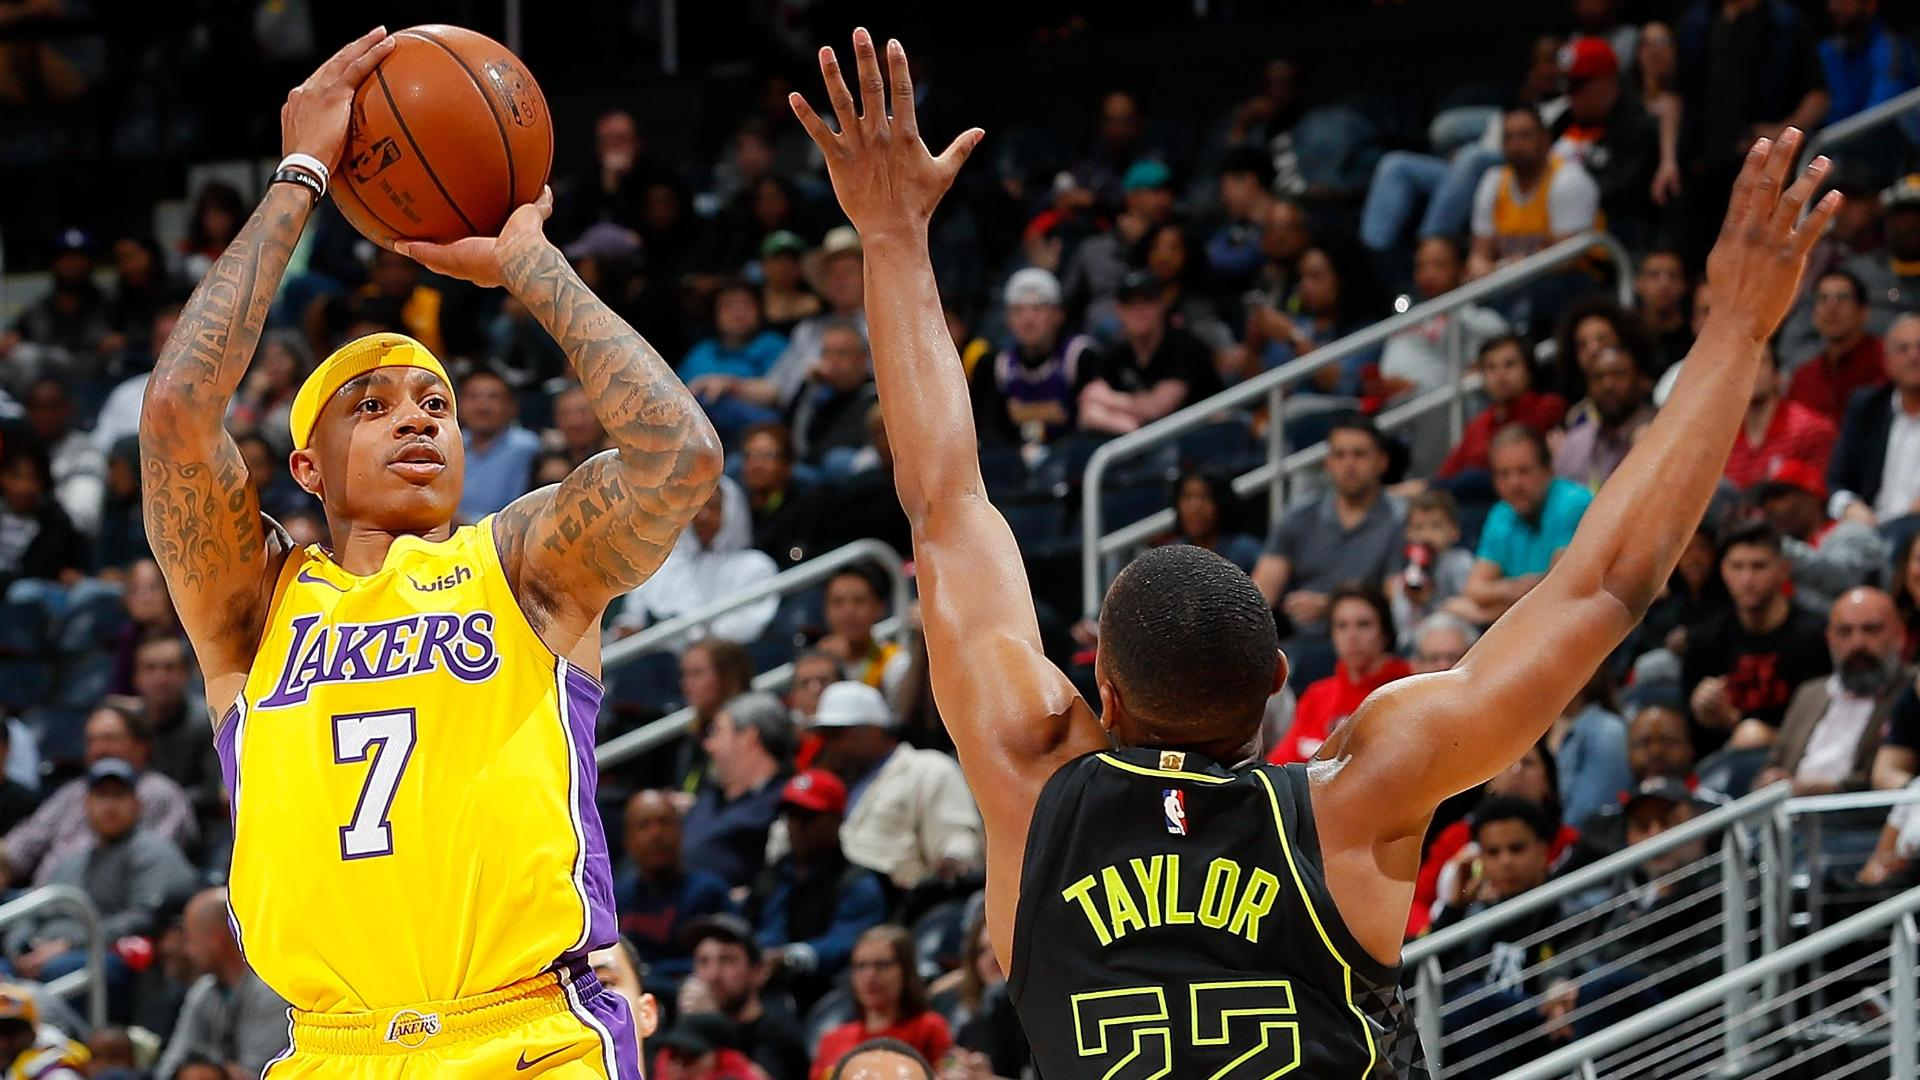 http://a.espncdn.com/media/motion/2018/0227/dm_180226_nba_lakers_hawks470/dm_180226_nba_lakers_hawks470.jpg